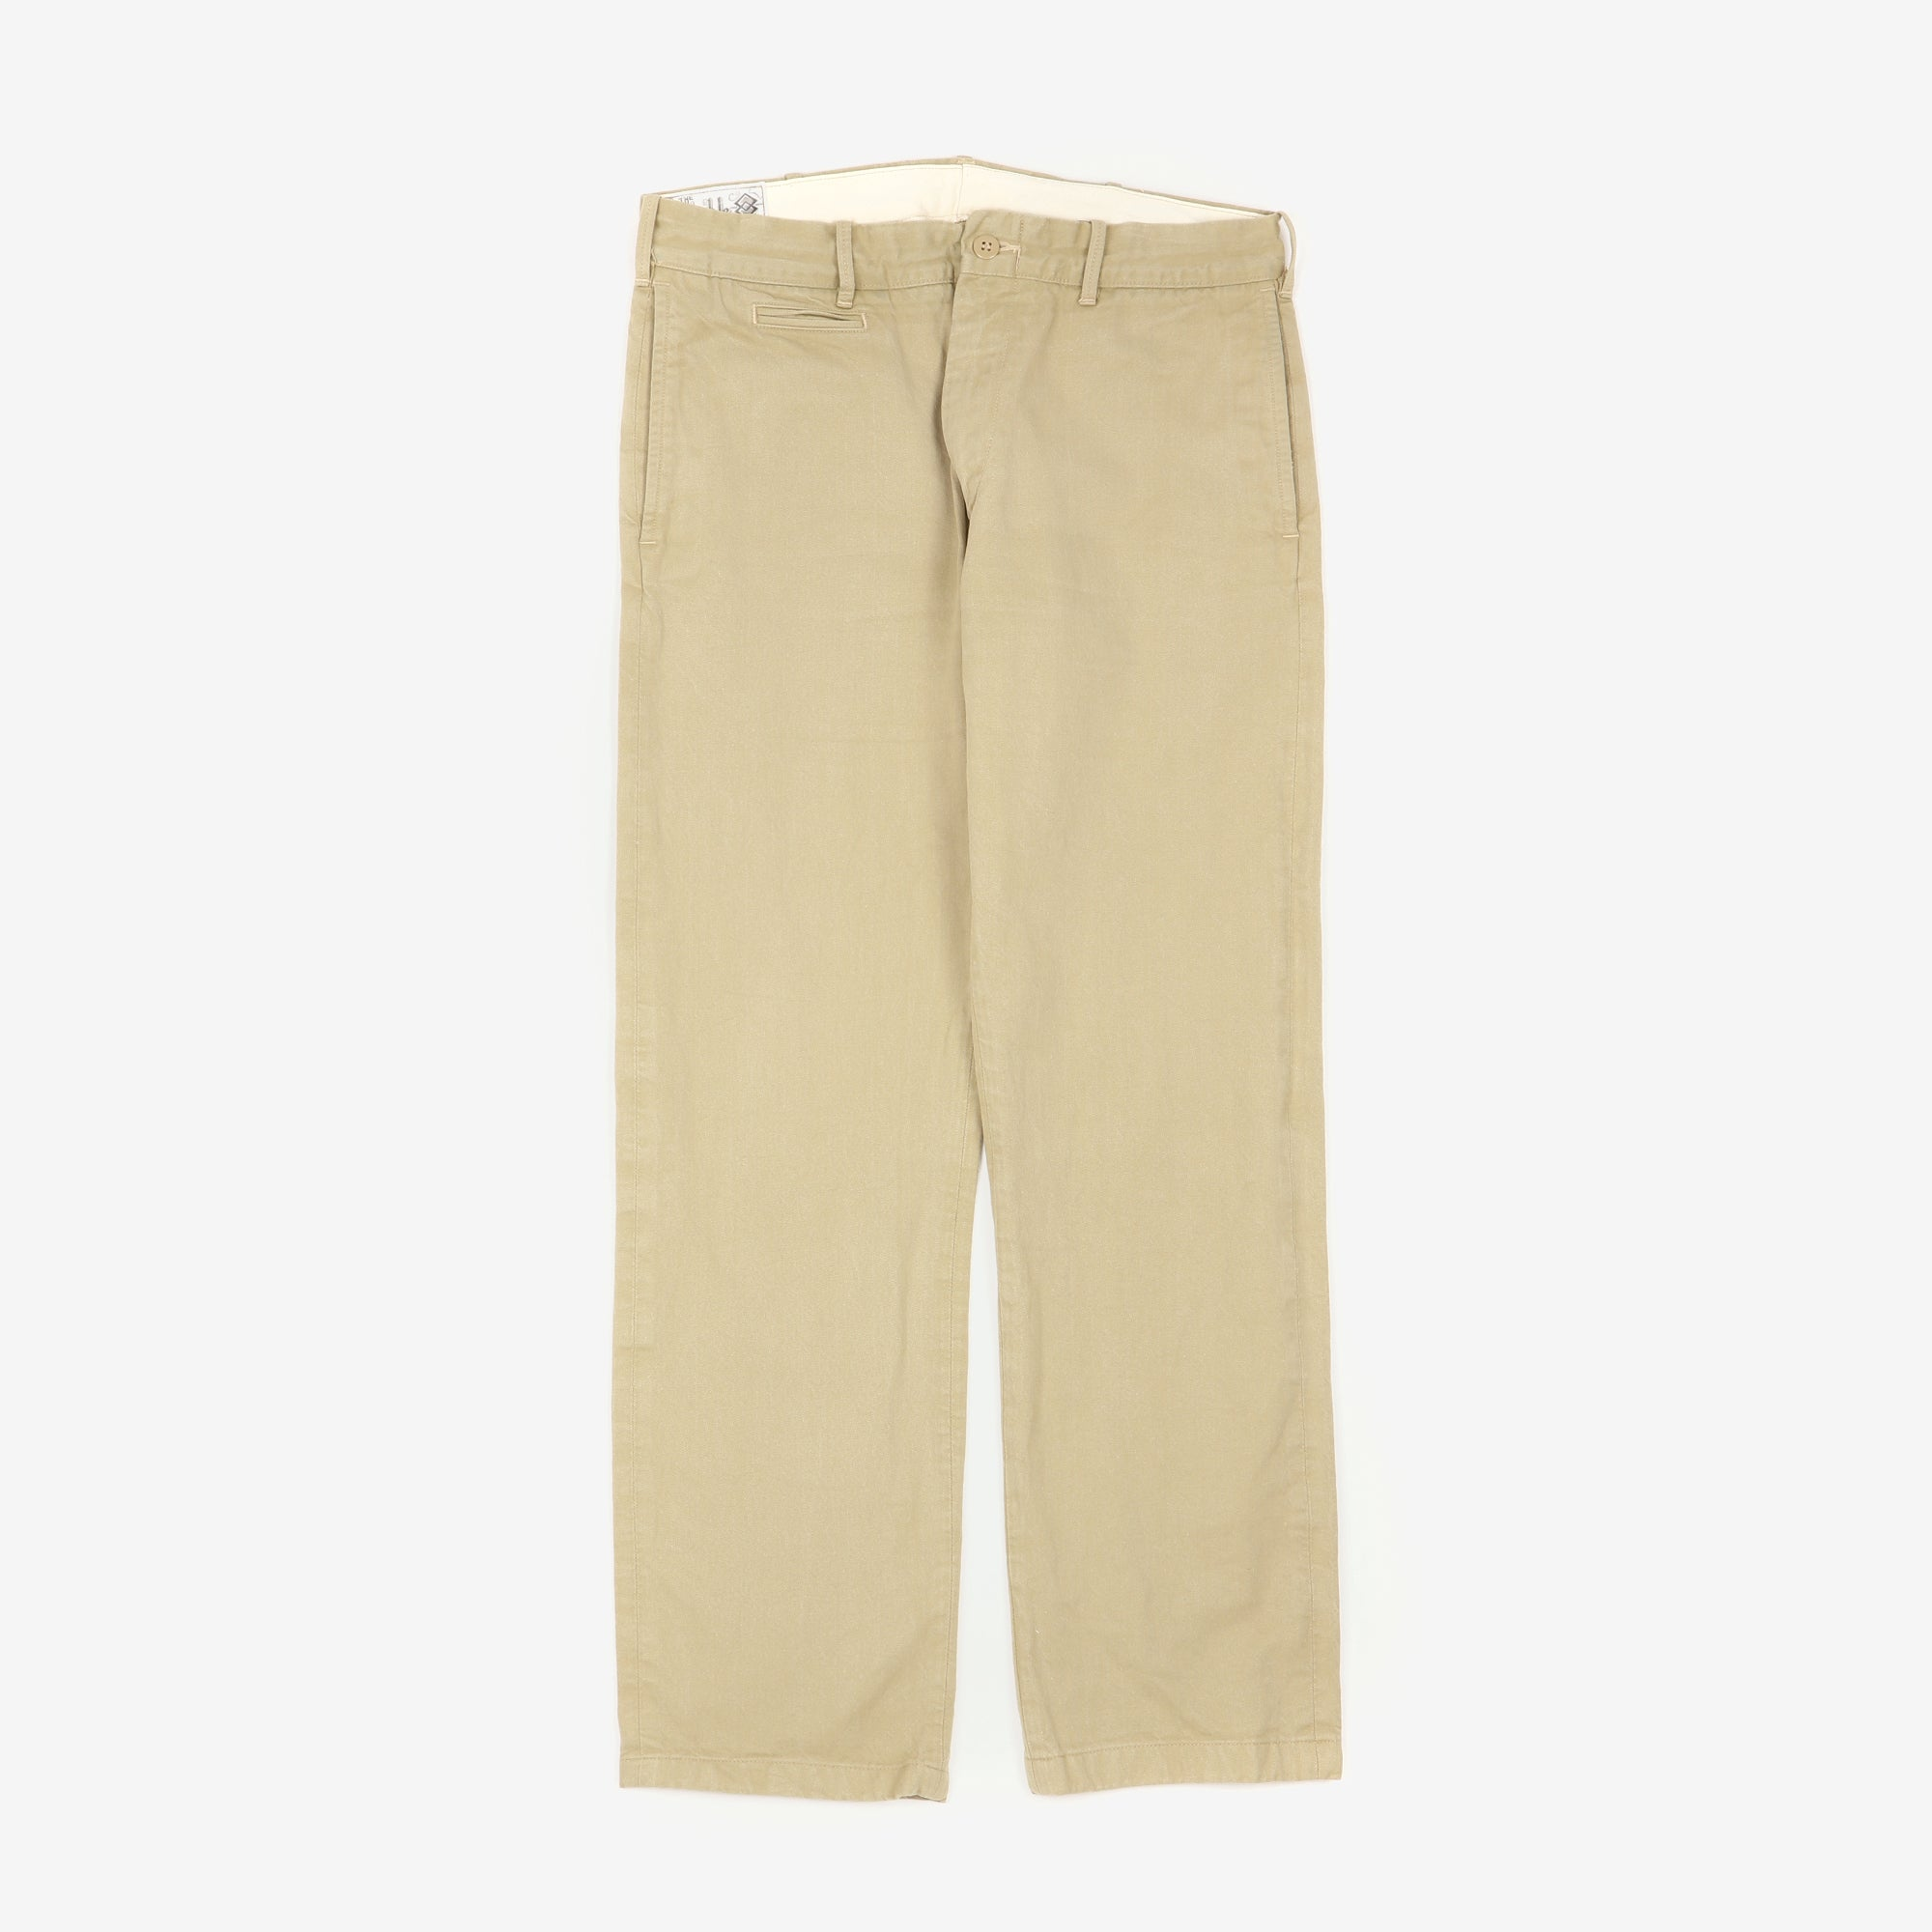 Double Diamond Chinos